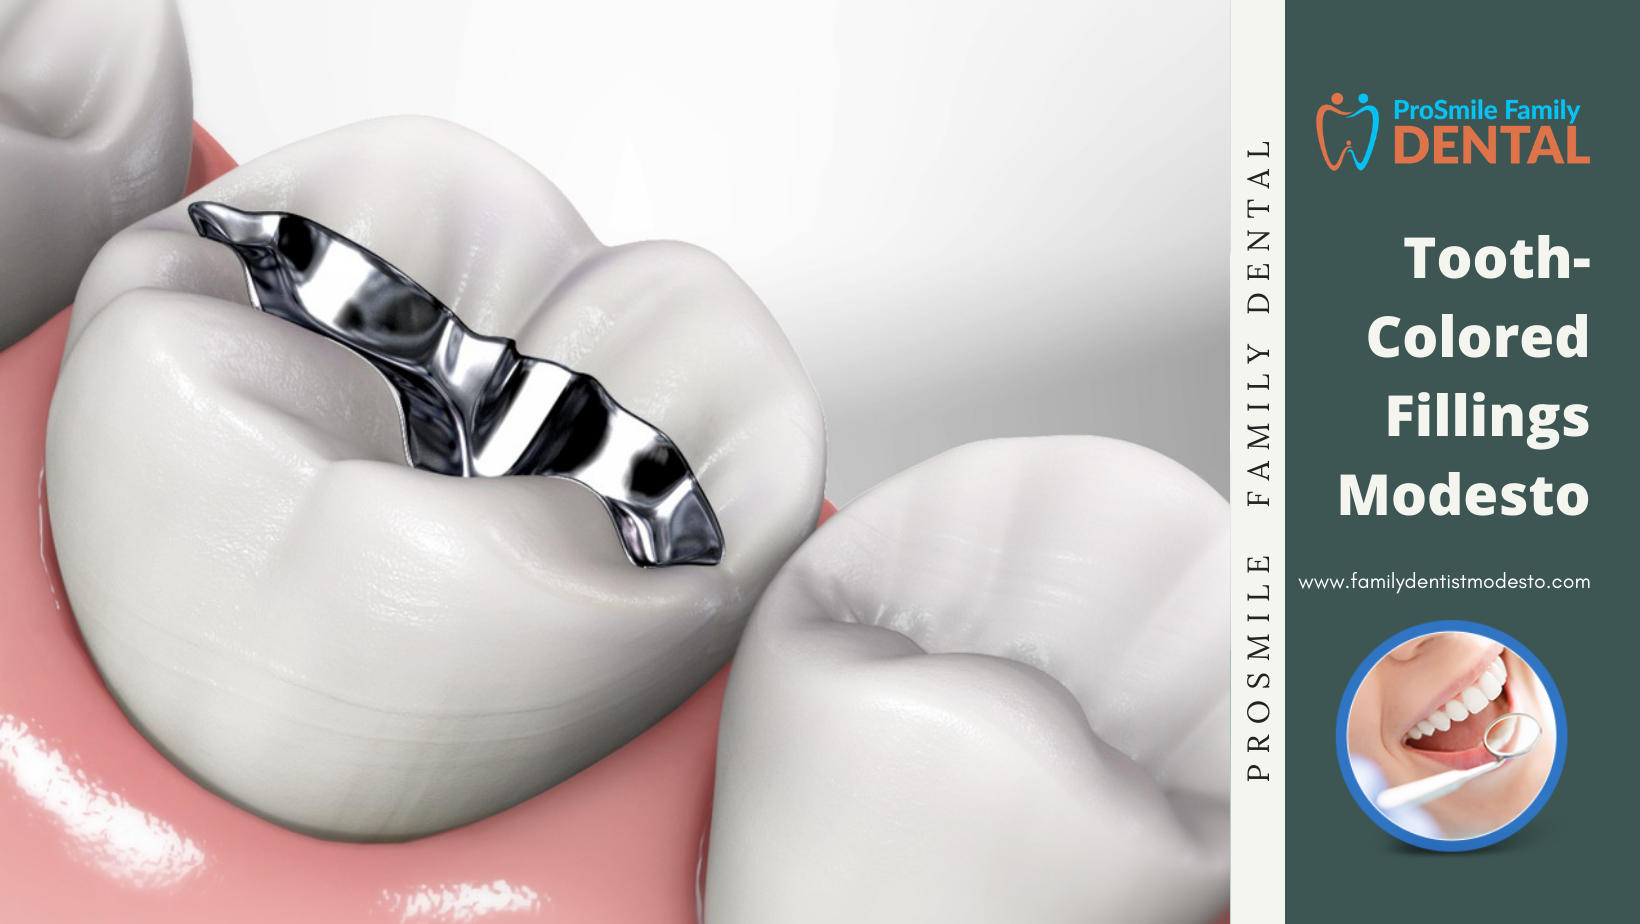 Tooth-Colored Fillings Modesto